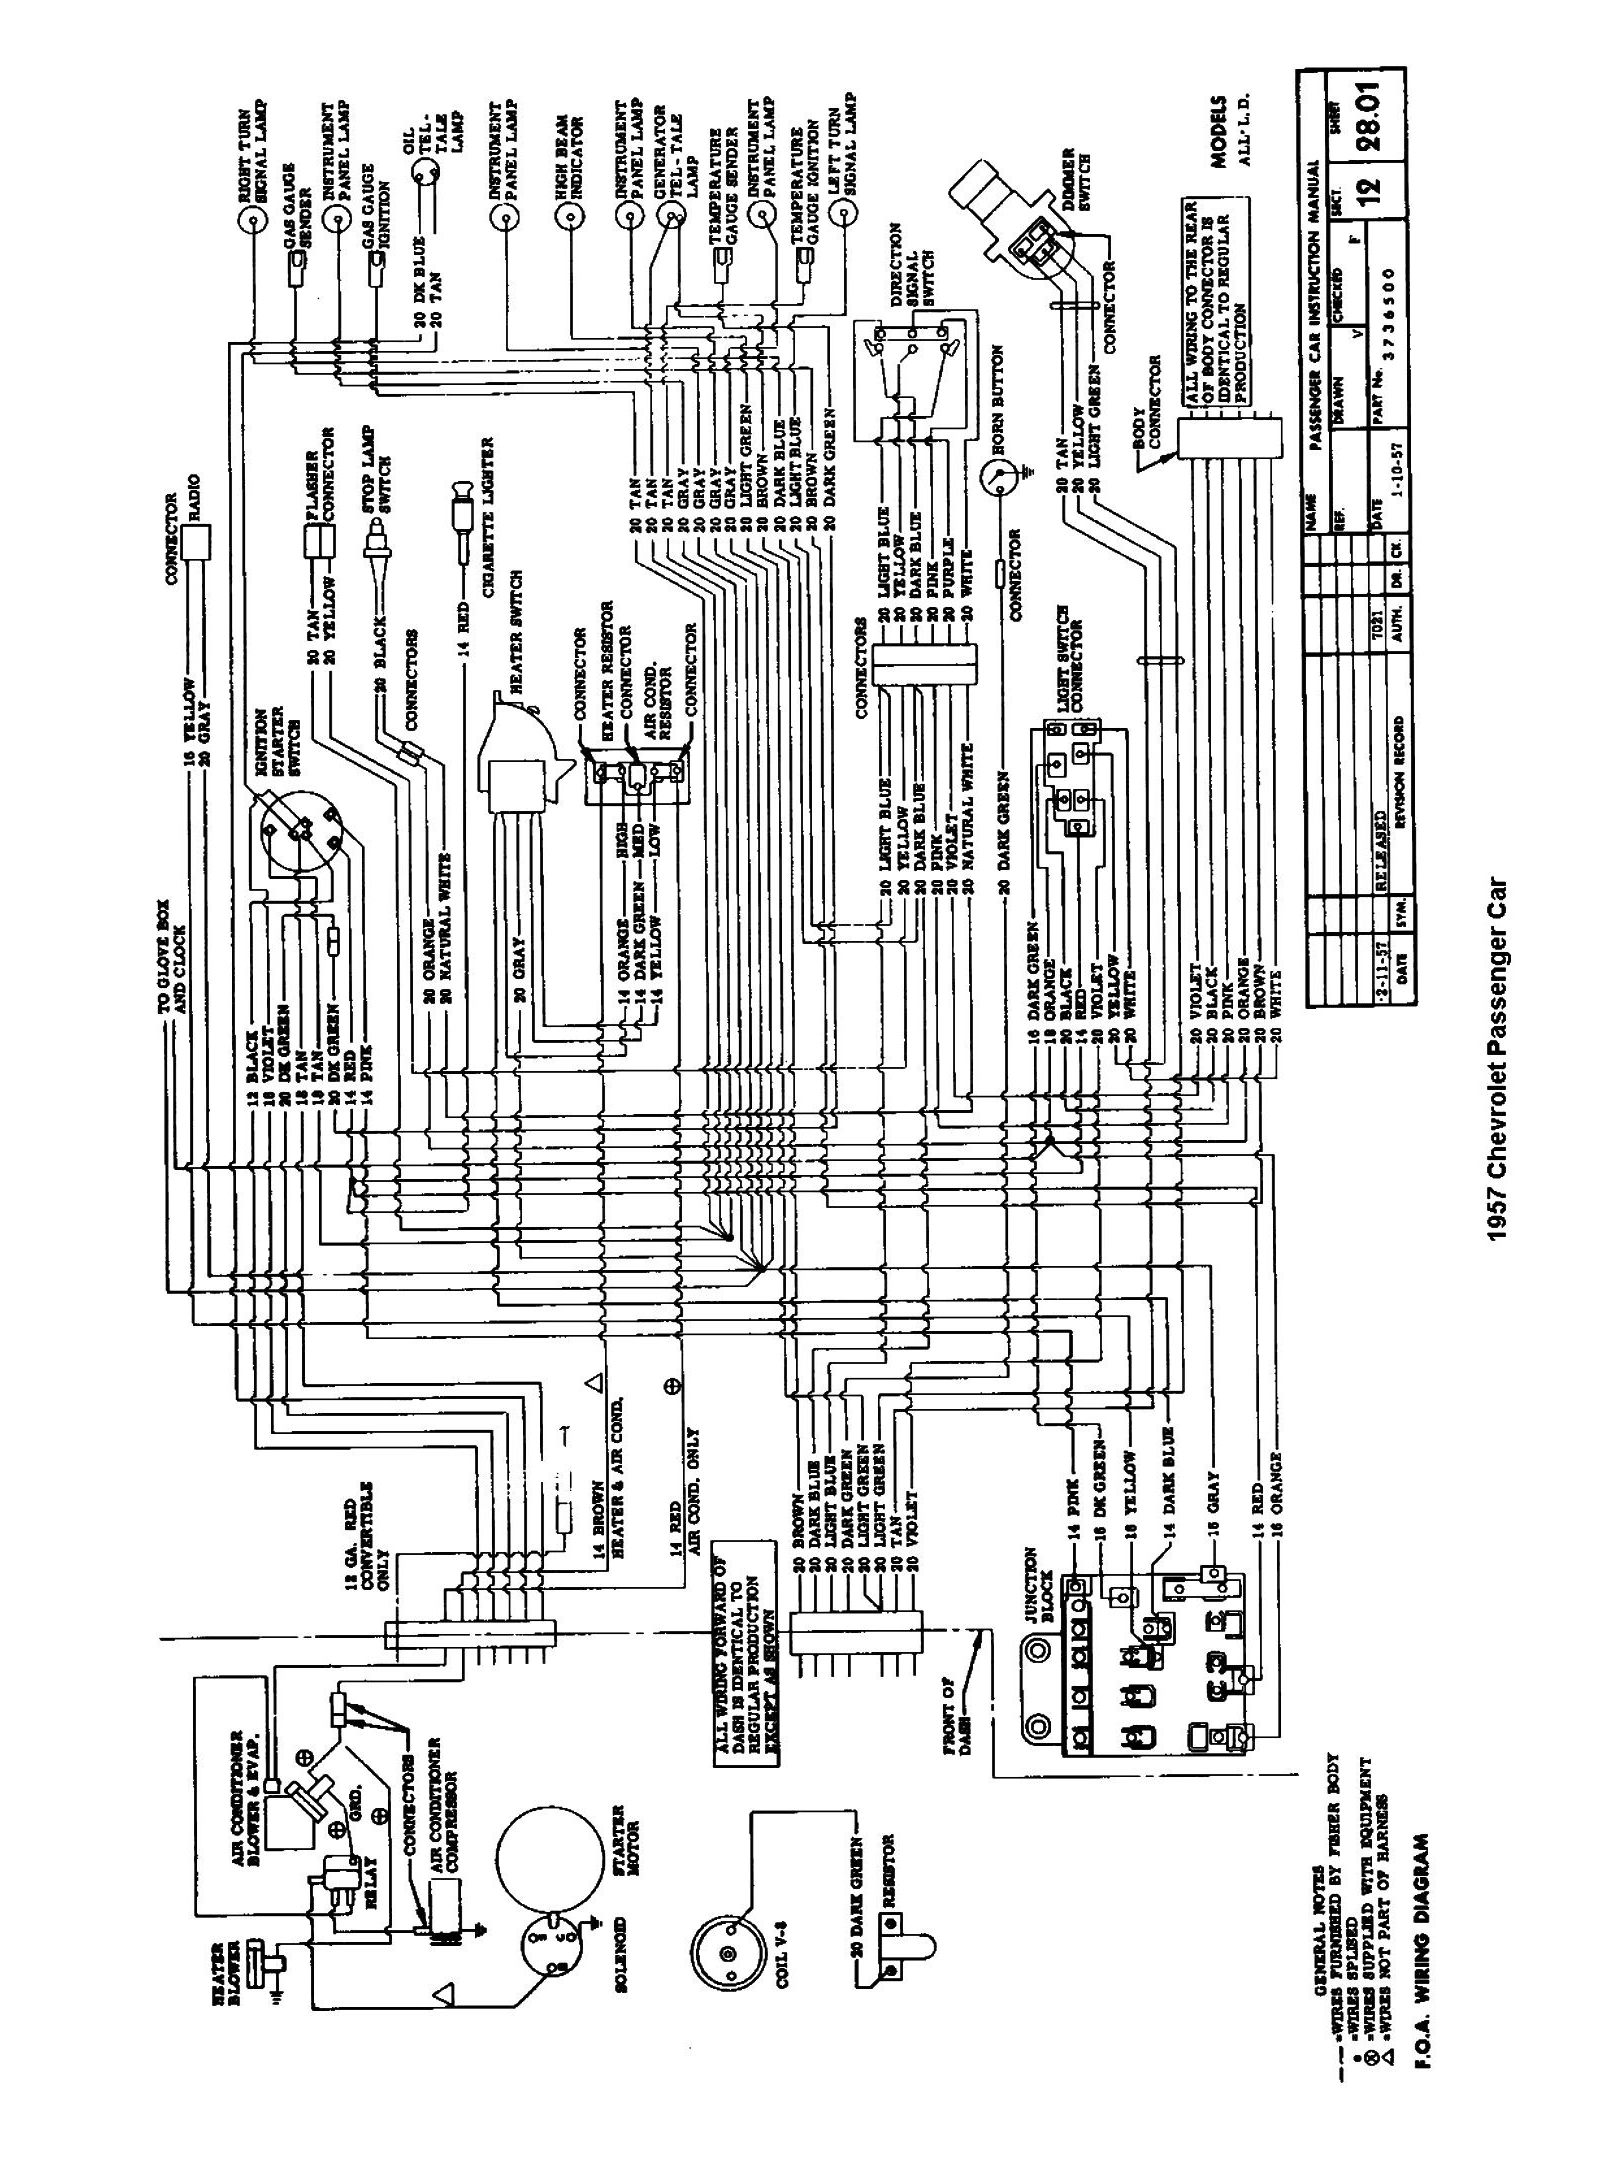 57car2 chevy wiring diagrams 65 chevy truck wiring diagram at alyssarenee.co